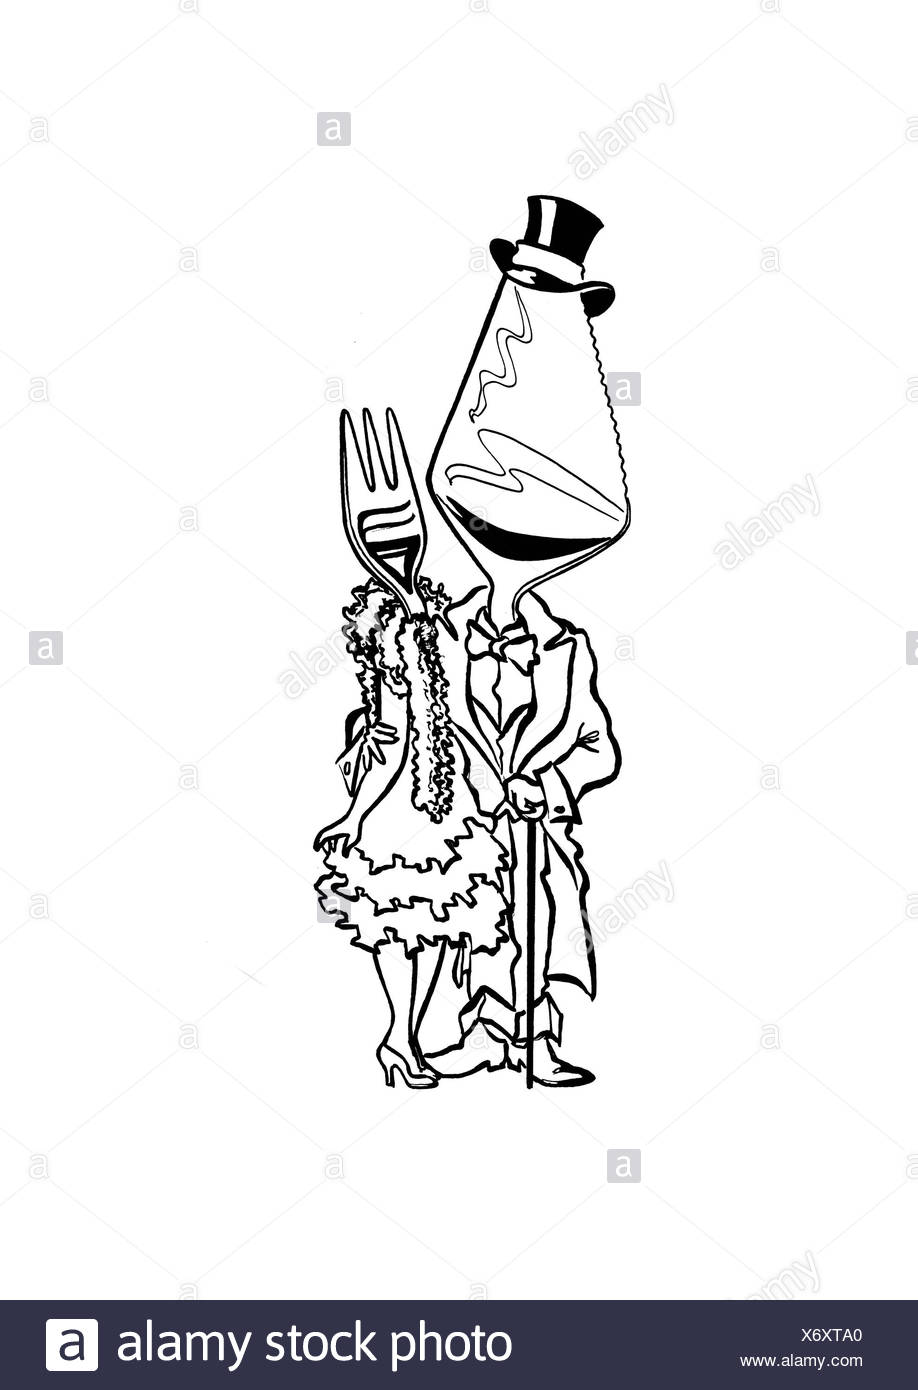 Knife and fork in festive evening dress - Stock Image